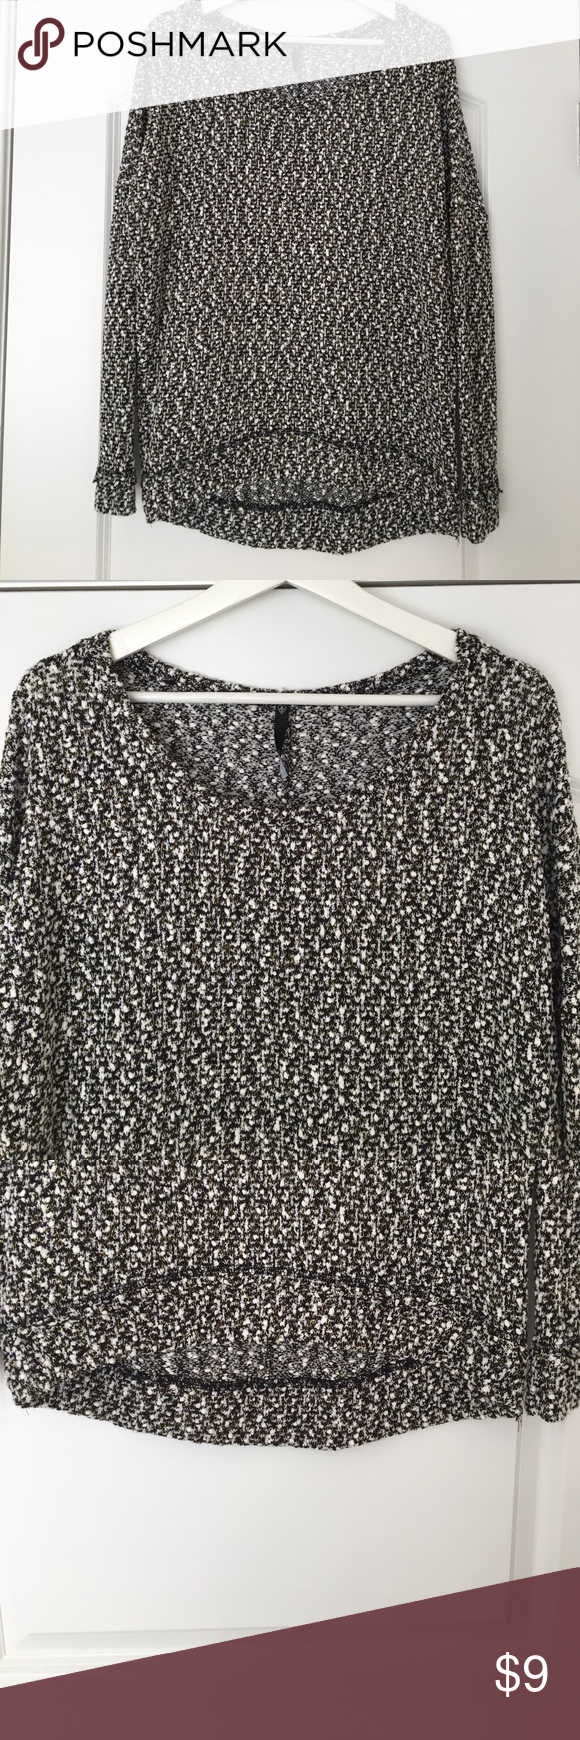 2aeaa91c8e9 Black/white/gold knit sweater from Love Culture Black/white/gold ...